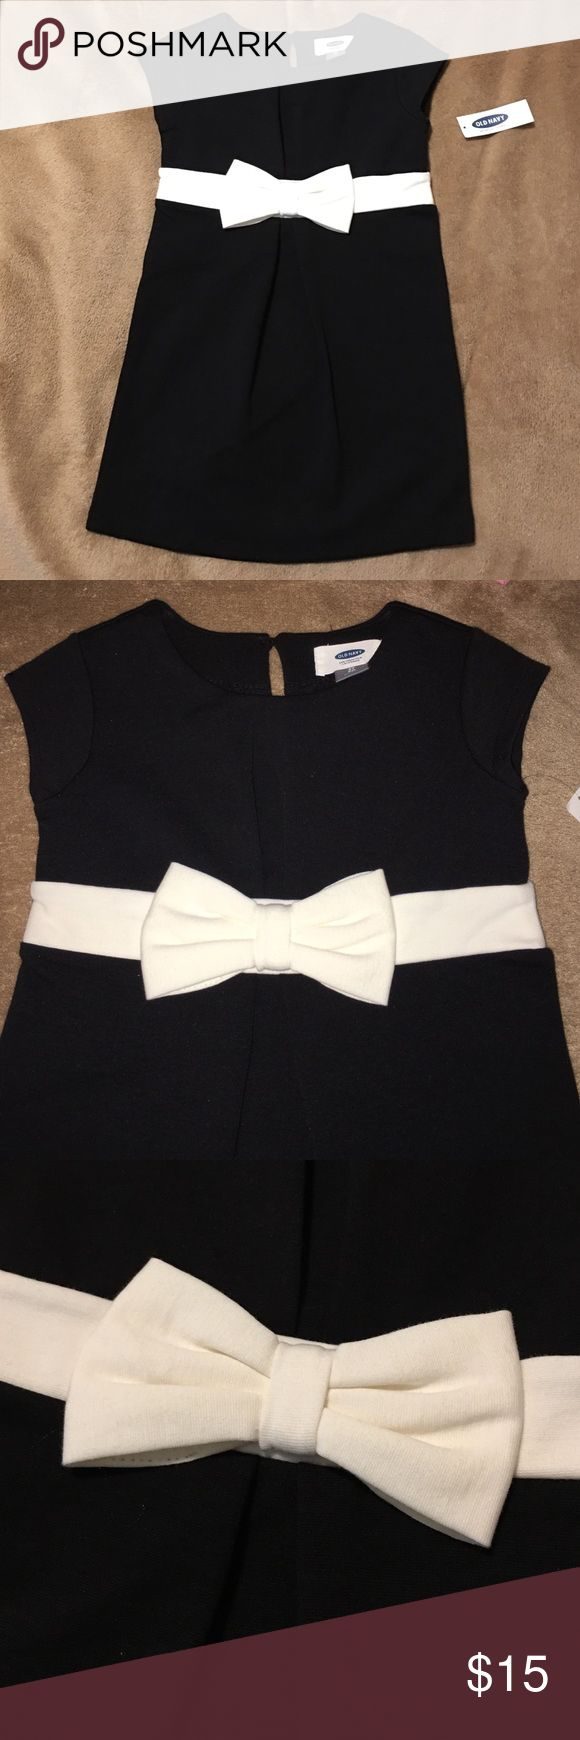 Black and white toddler dress So disappointed my little one outgrew this before she could wear it! It is vintage reproduction by Old Navy! Black dress with a little white bow around the waist. Old Navy Dresses Formal